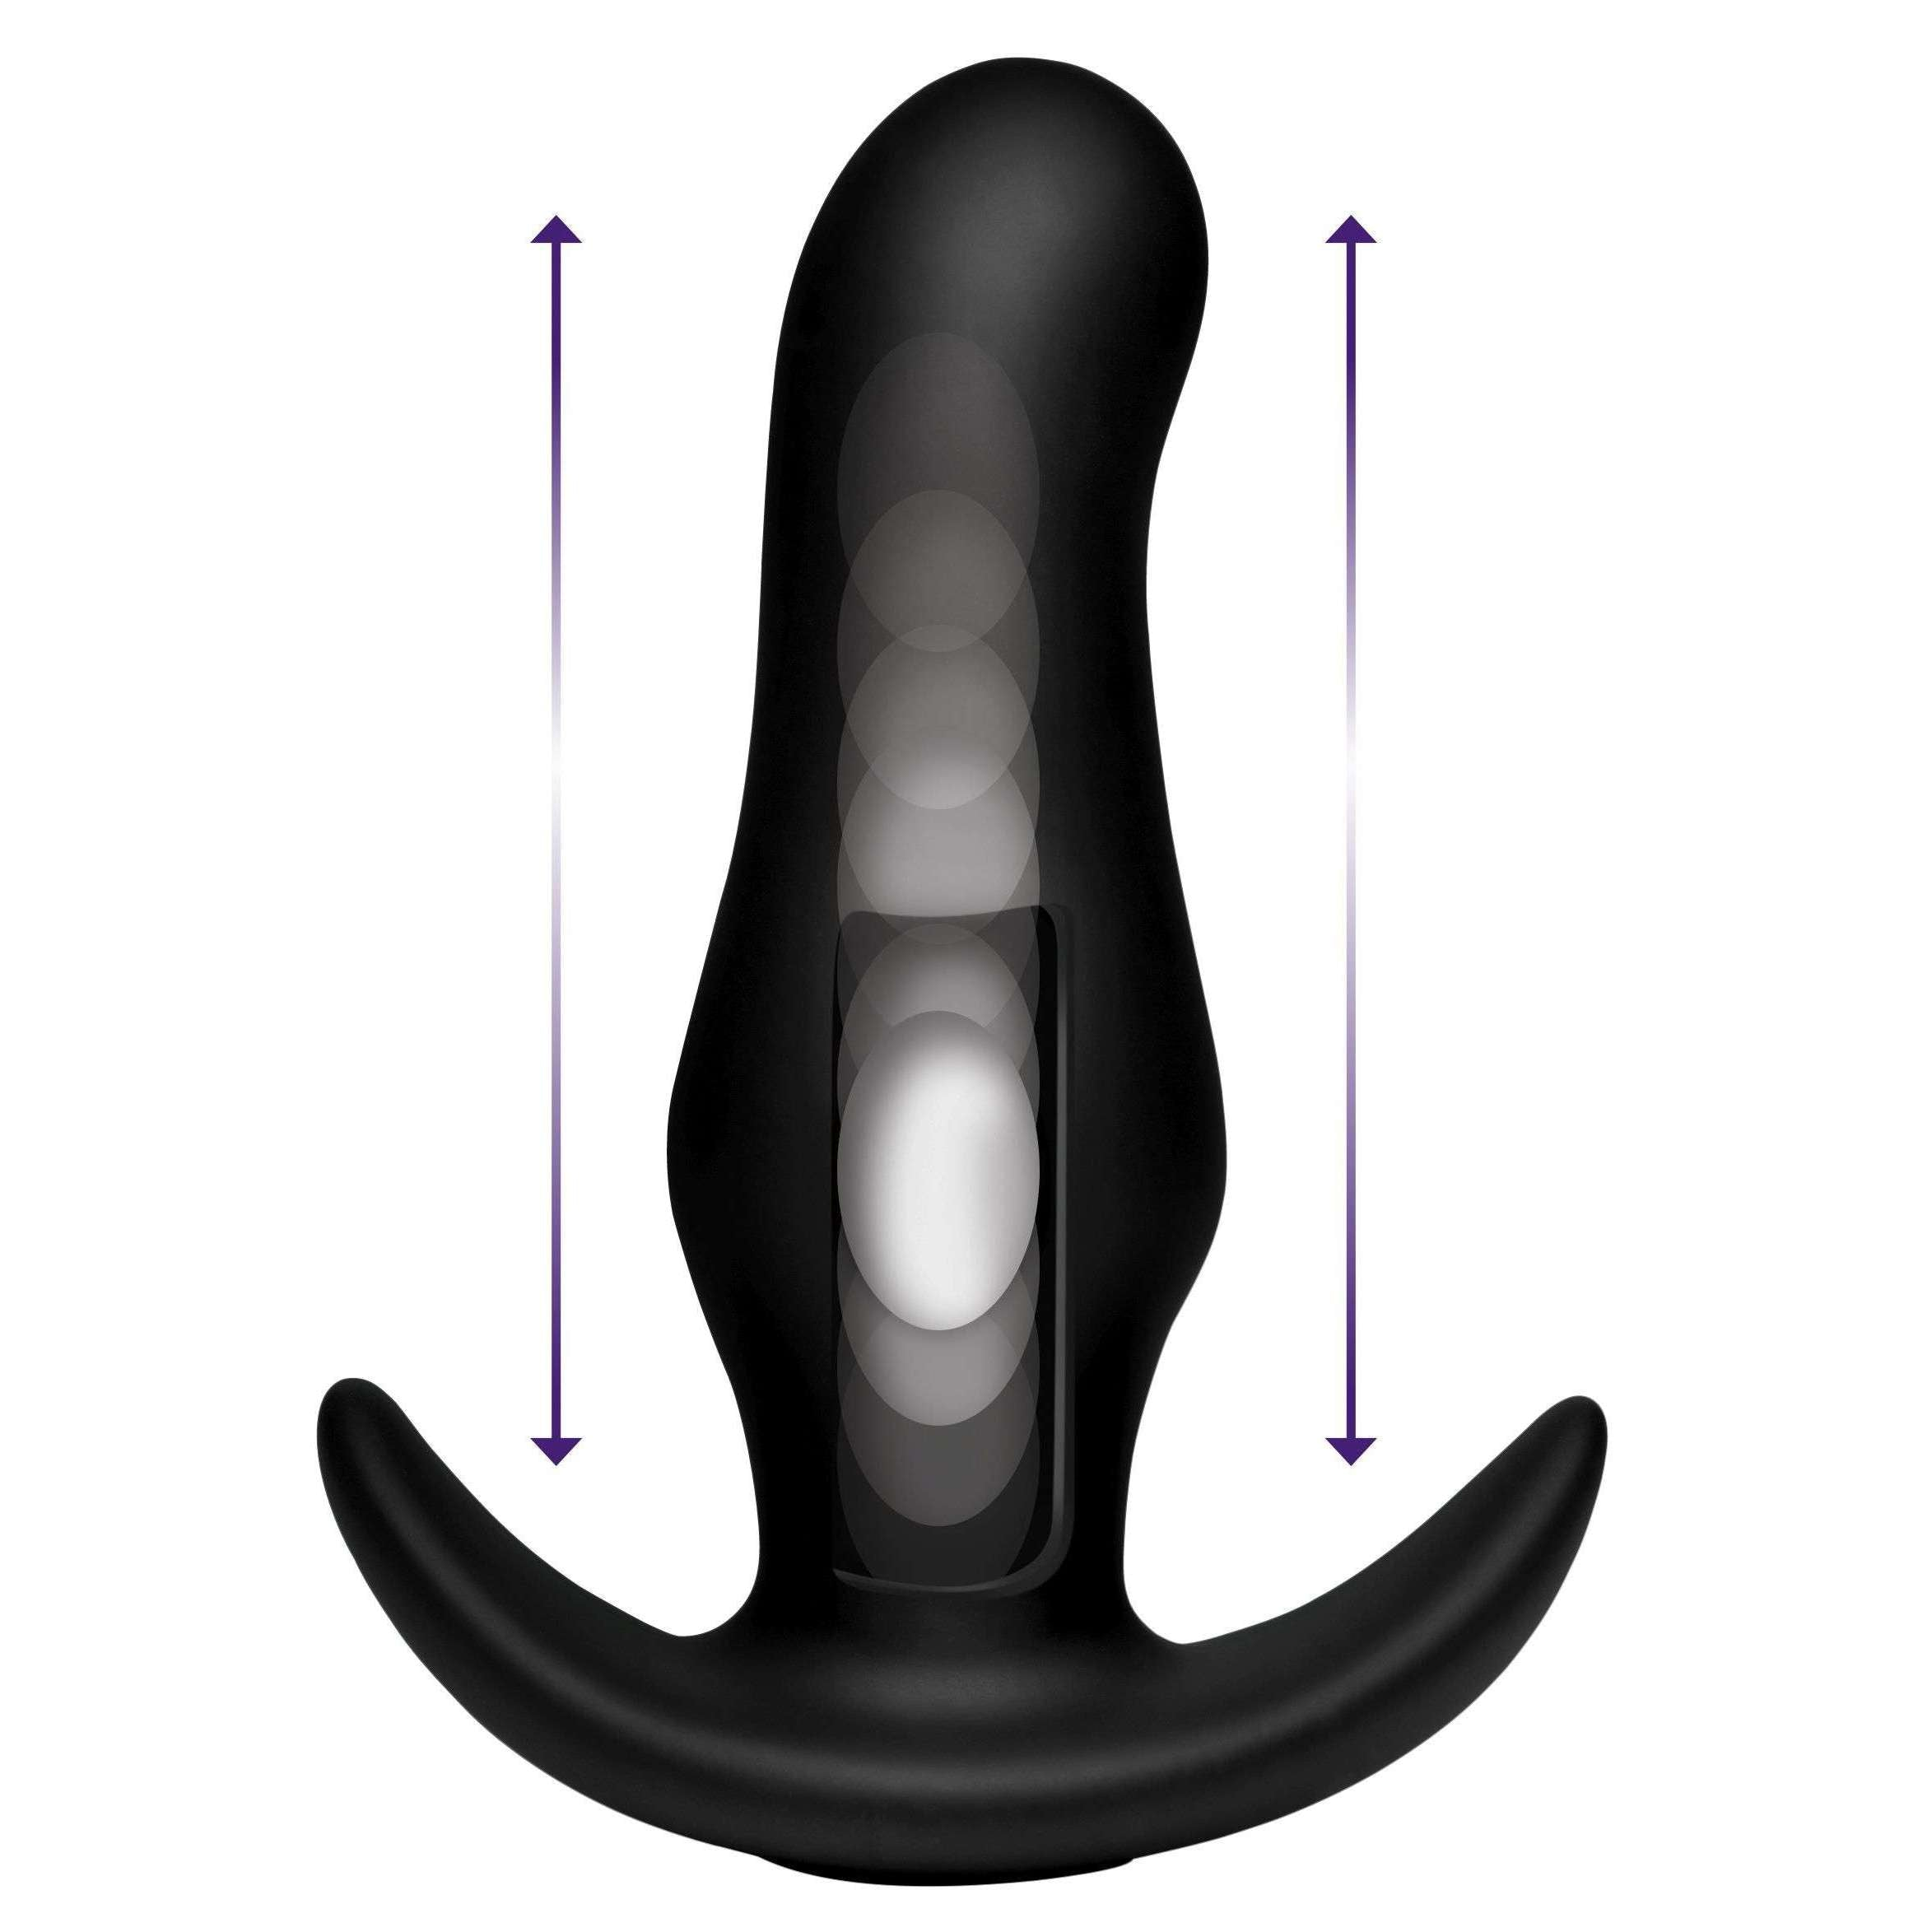 Kinetic Thumping 7X Prostate Anal Plug